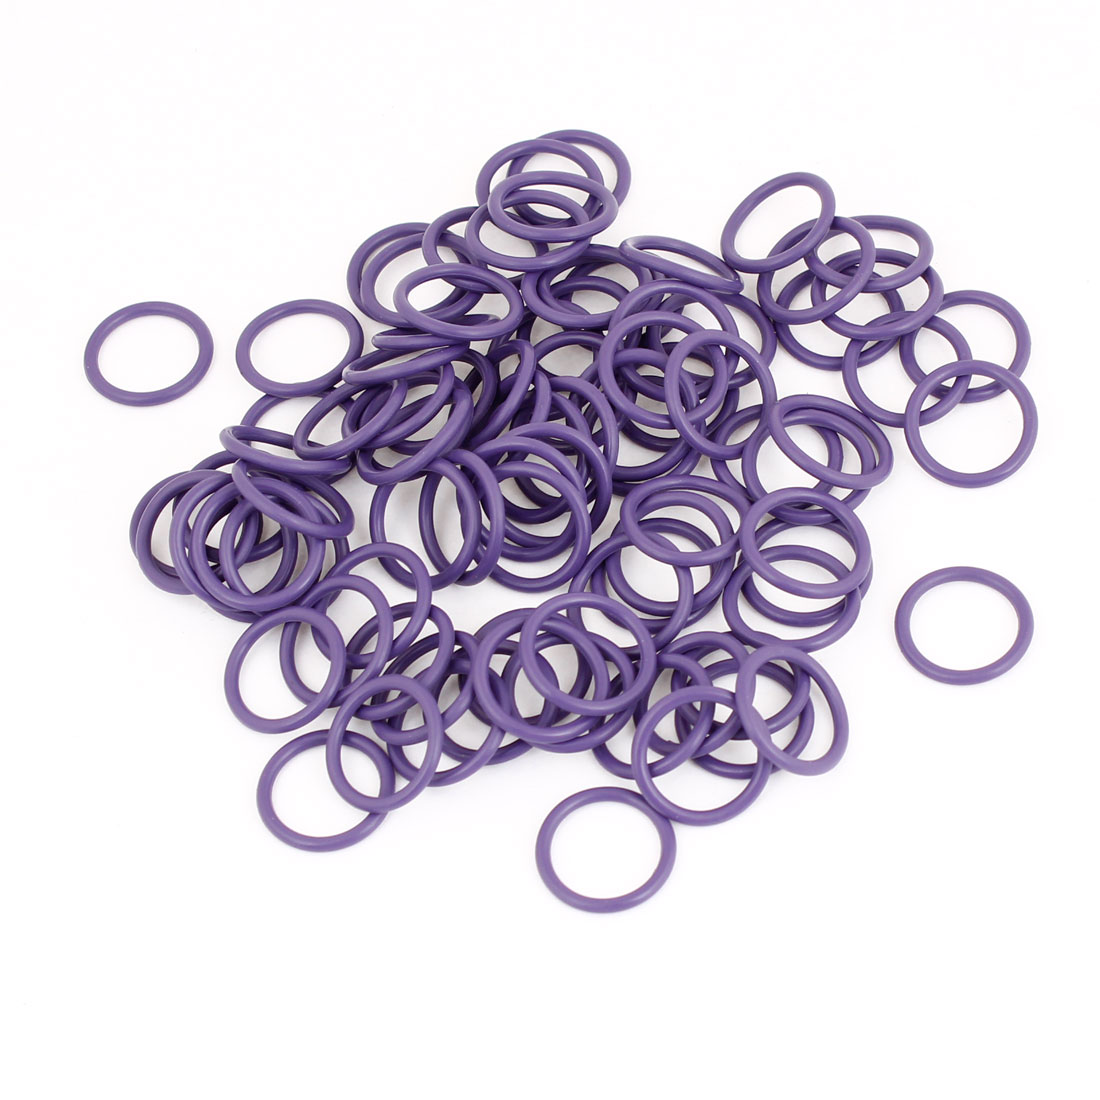 100pcs HNBR Car Truck Van Air Con A/C Purple Seal O Ring 15.7 x 13.3 x 1.7mm